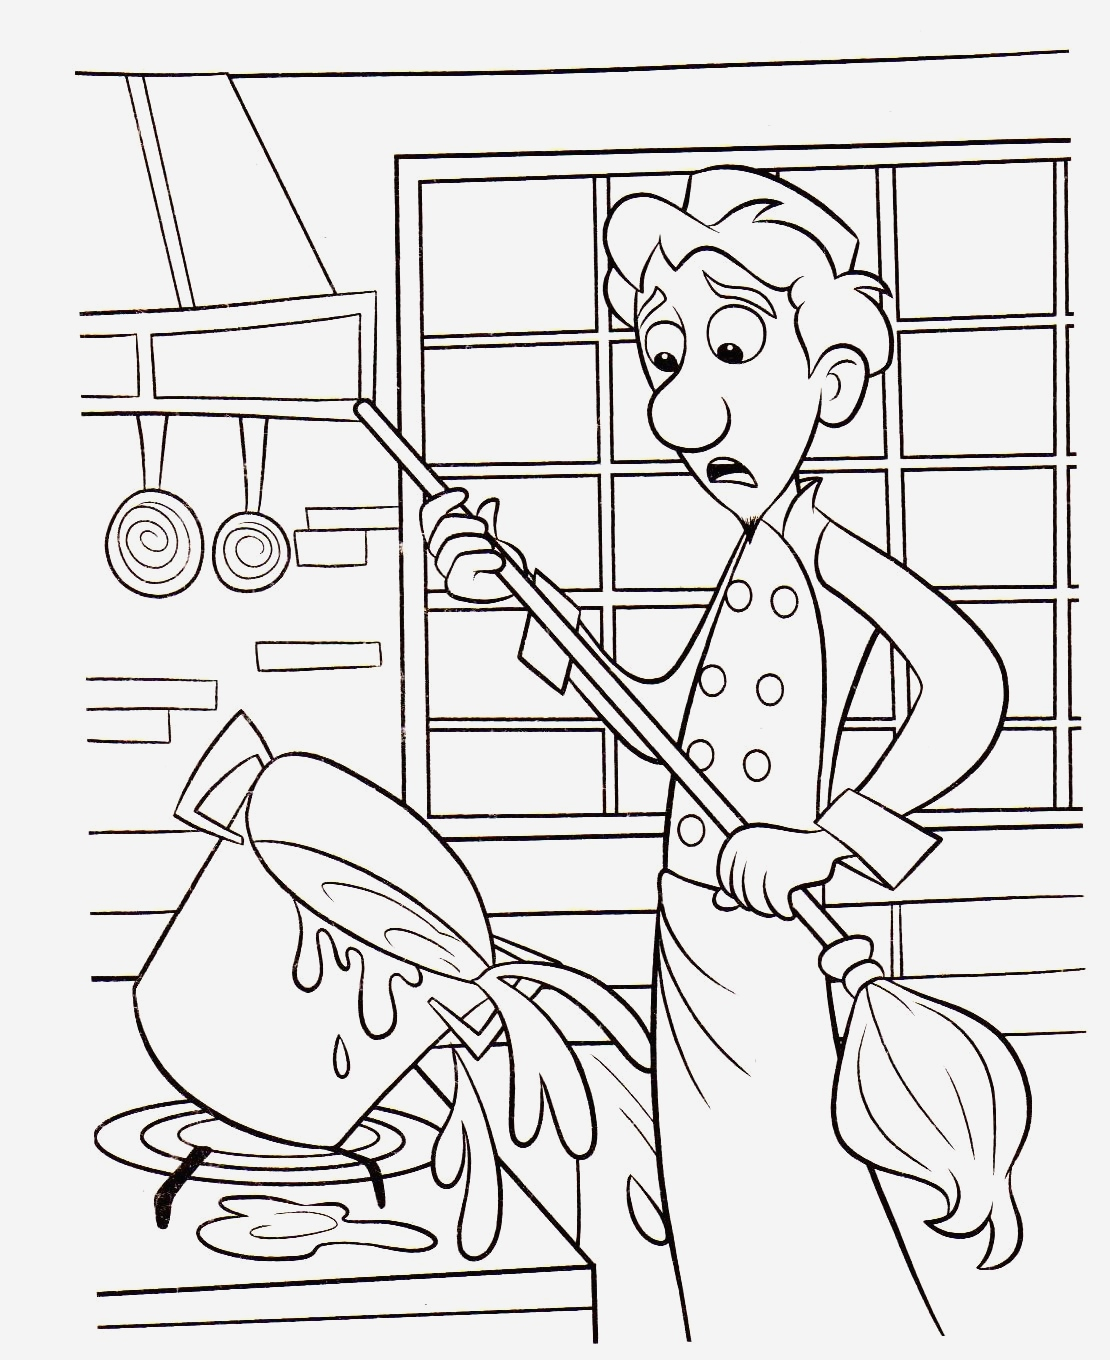 Coloriage Ratatouille Elegant Dessin A Colorier Du Net Coloriage Ratatouille Of Coloriage Ratatouille